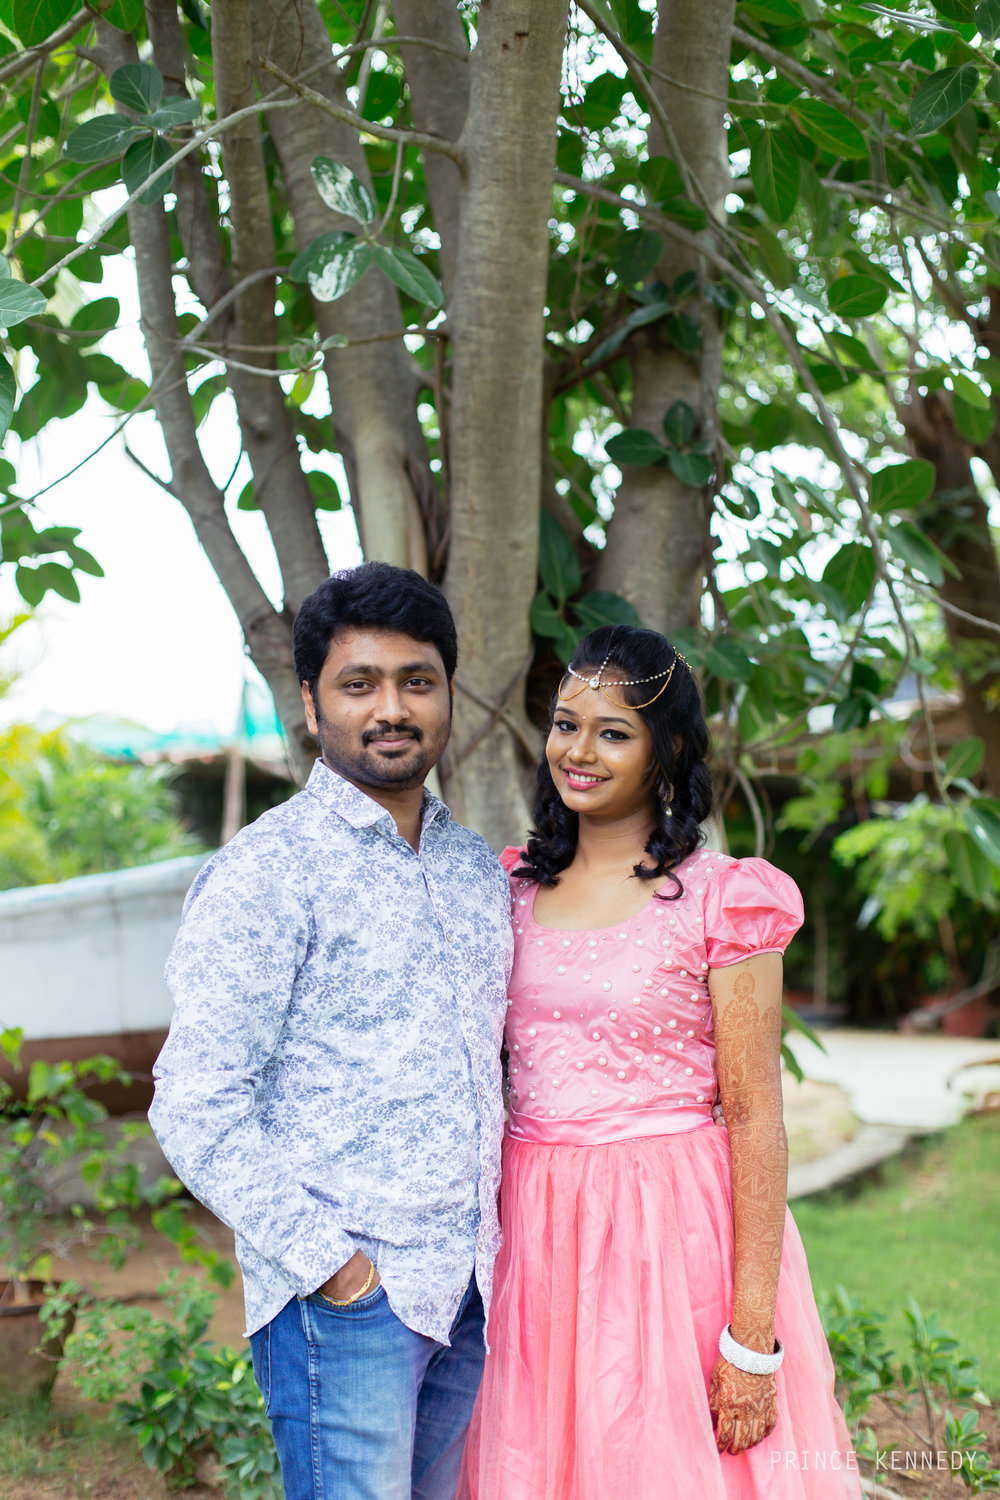 Engagement-Couple-Portrait-Portraiture-Wedding-Couple-Portrait-Chennai-Photographer-Candid-Photography-Destination-Best-Prince-Kennedy-Photography-46.jpg